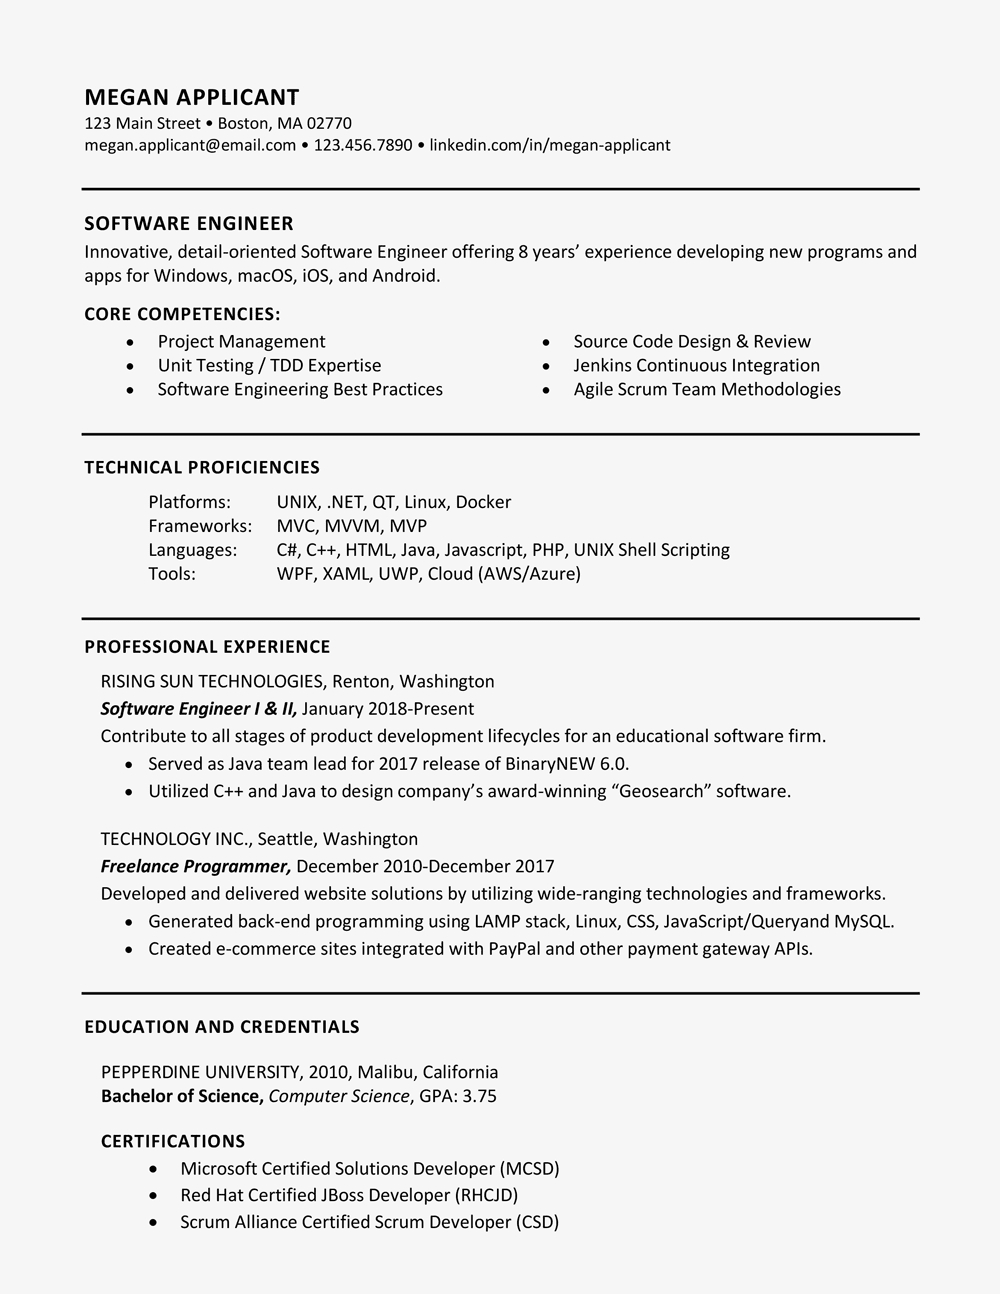 Describe Your Computer Skills Resume Sample - the Best Skills to Include On A Resume